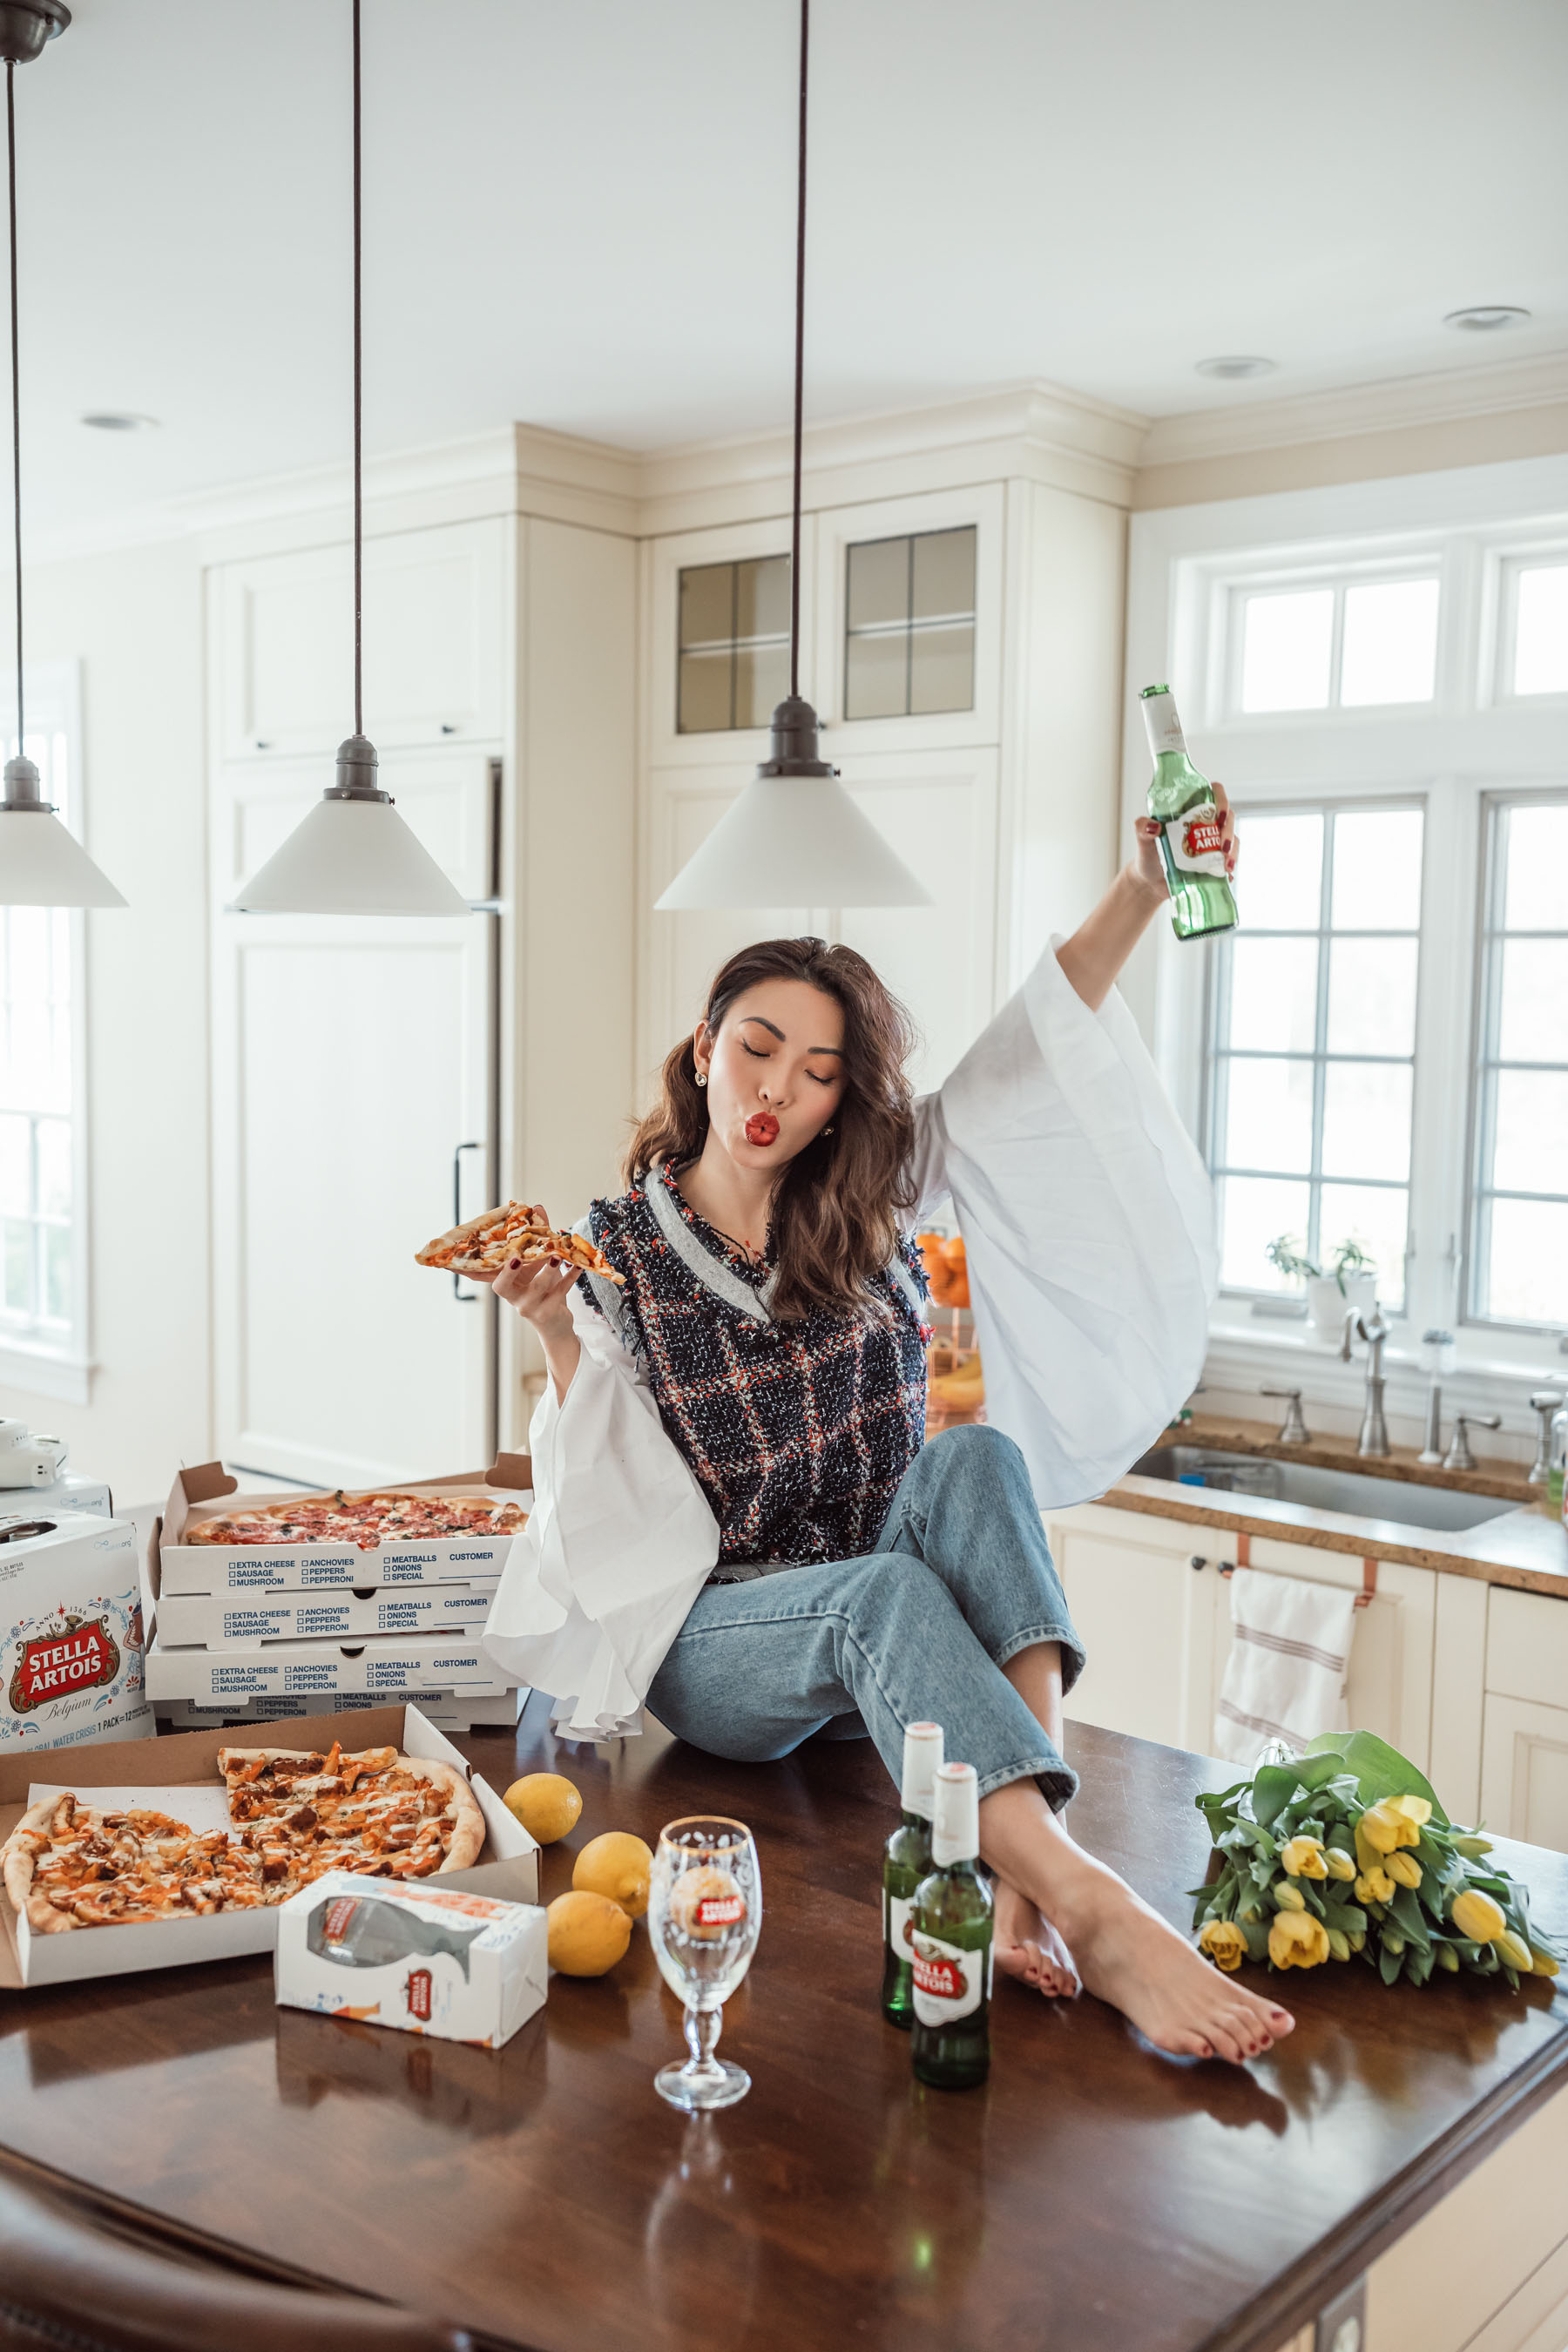 How to Throw a Super Bowl Party That Matters // Notjessfashion // Stella Artois, Super Bowl Party, fashion blogger, new york fashion blogger, jessica wang, pizza and bear